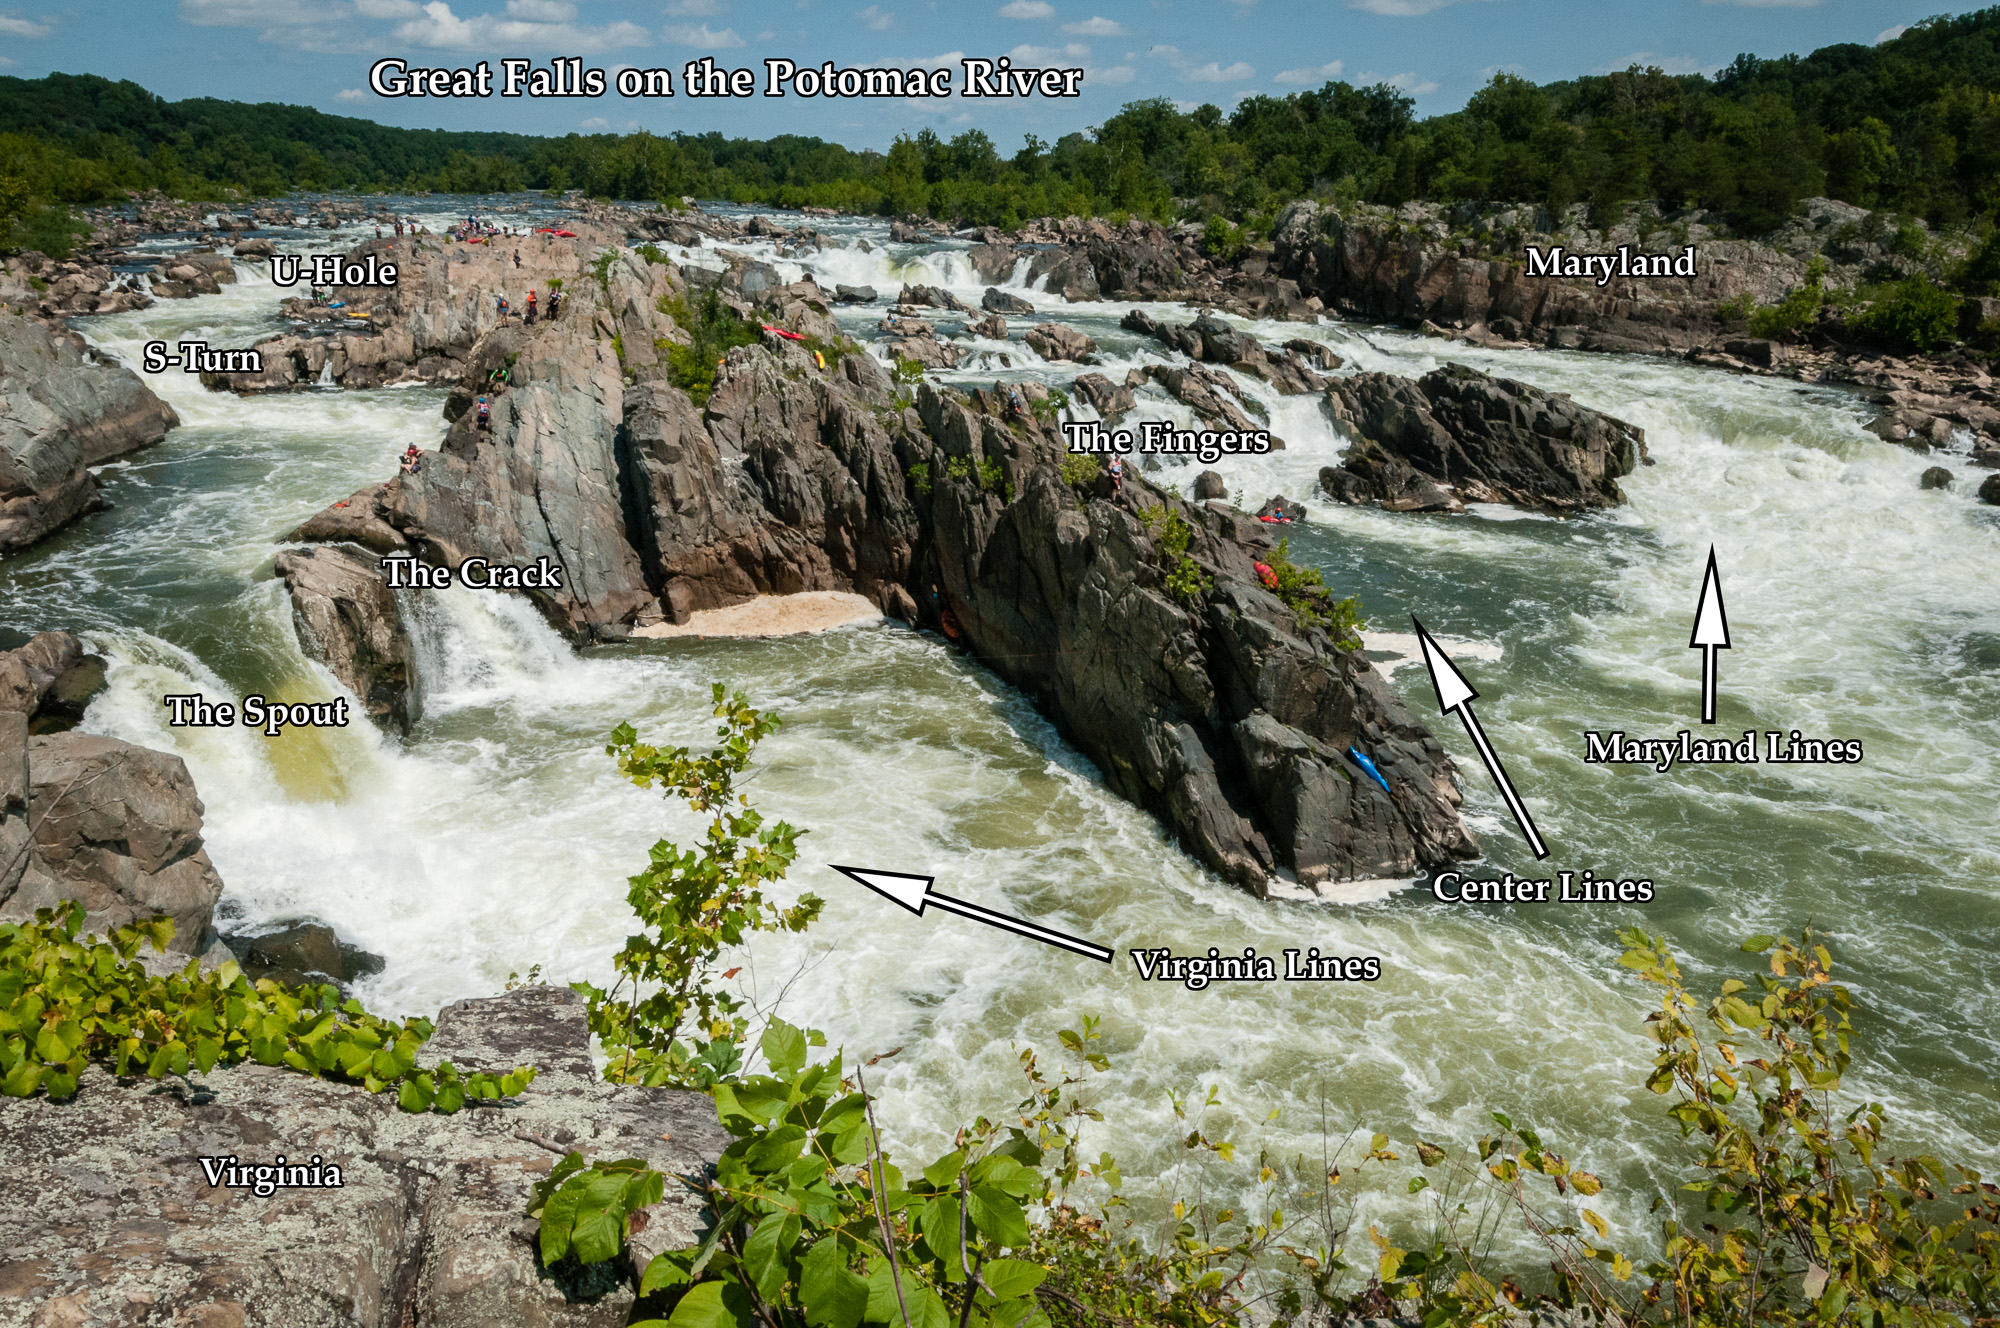 The different lines and some of the falls at Great Falls on the Potomac River, just outside Washington, D.C. Click the image for a larger view.